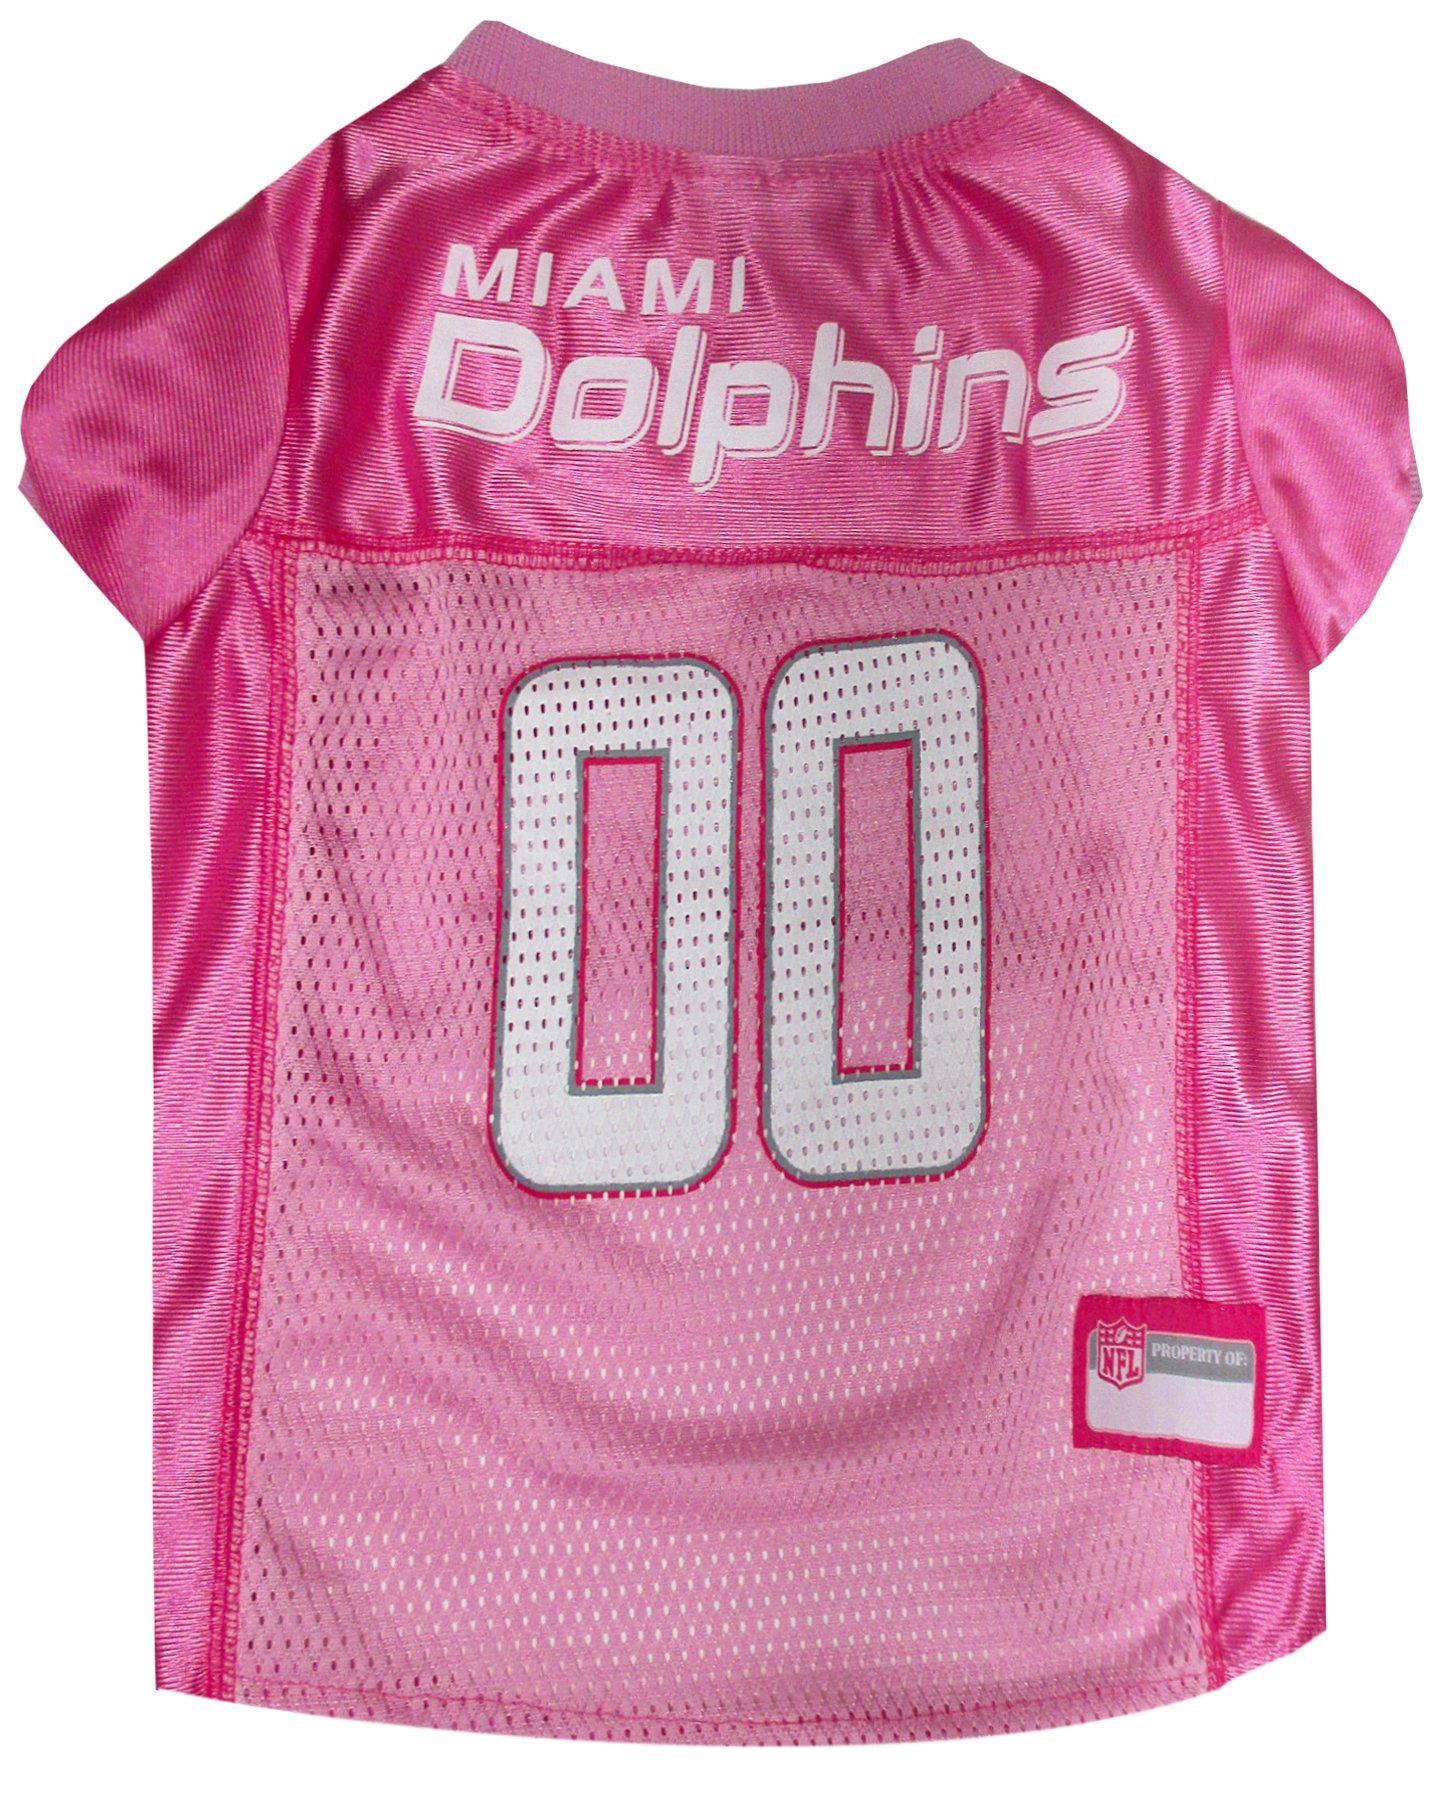 NFL MIAMI DOLPHINS DOG Jersey Pink, X-Small. - Football Pet Jersey in PINK